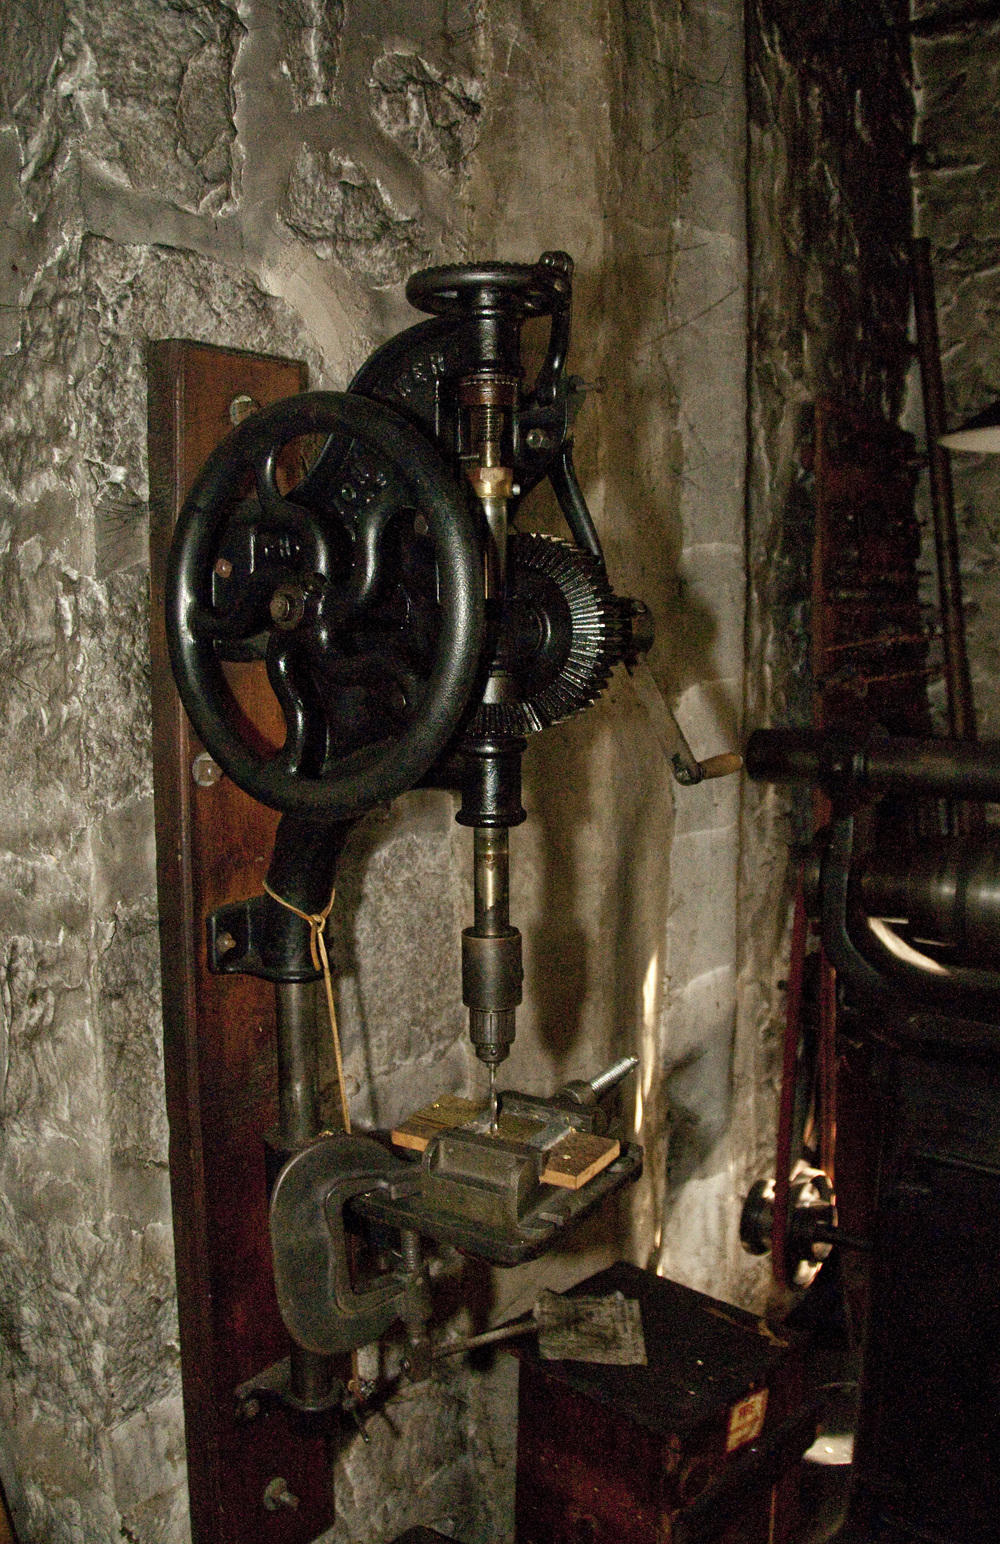 machine shop Hagley Museum